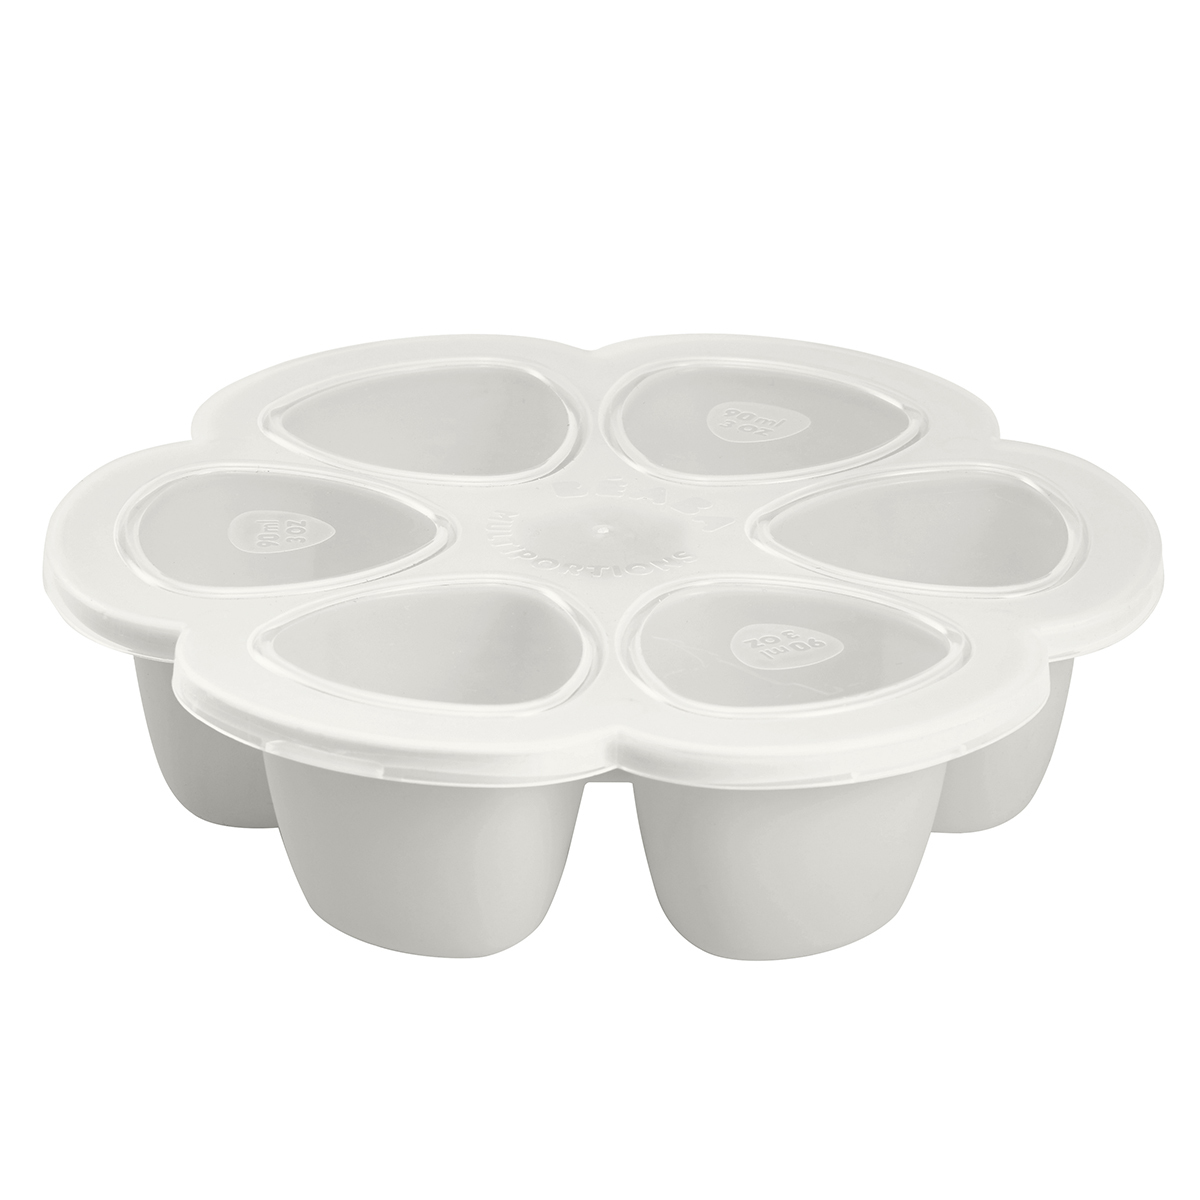 Vaisselle & Couvert Multiportions Silicone 6 x 90 ml - Light Mist Multiportions Silicone 6 x 90 ml - Light Mist